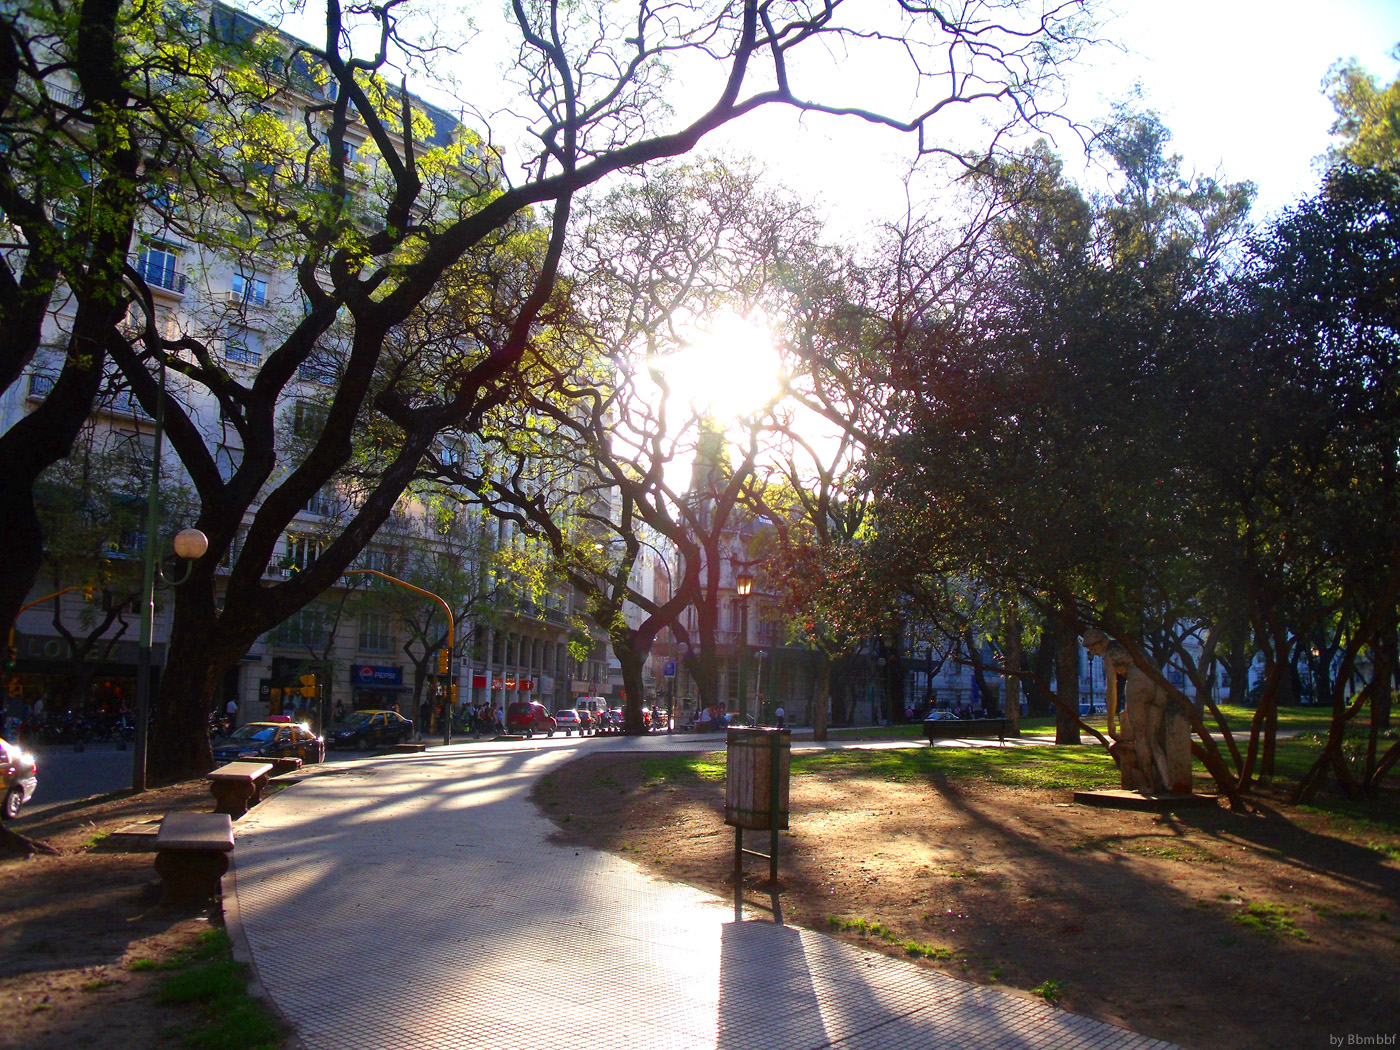 Buenos Aires - Parque by bbmbbf